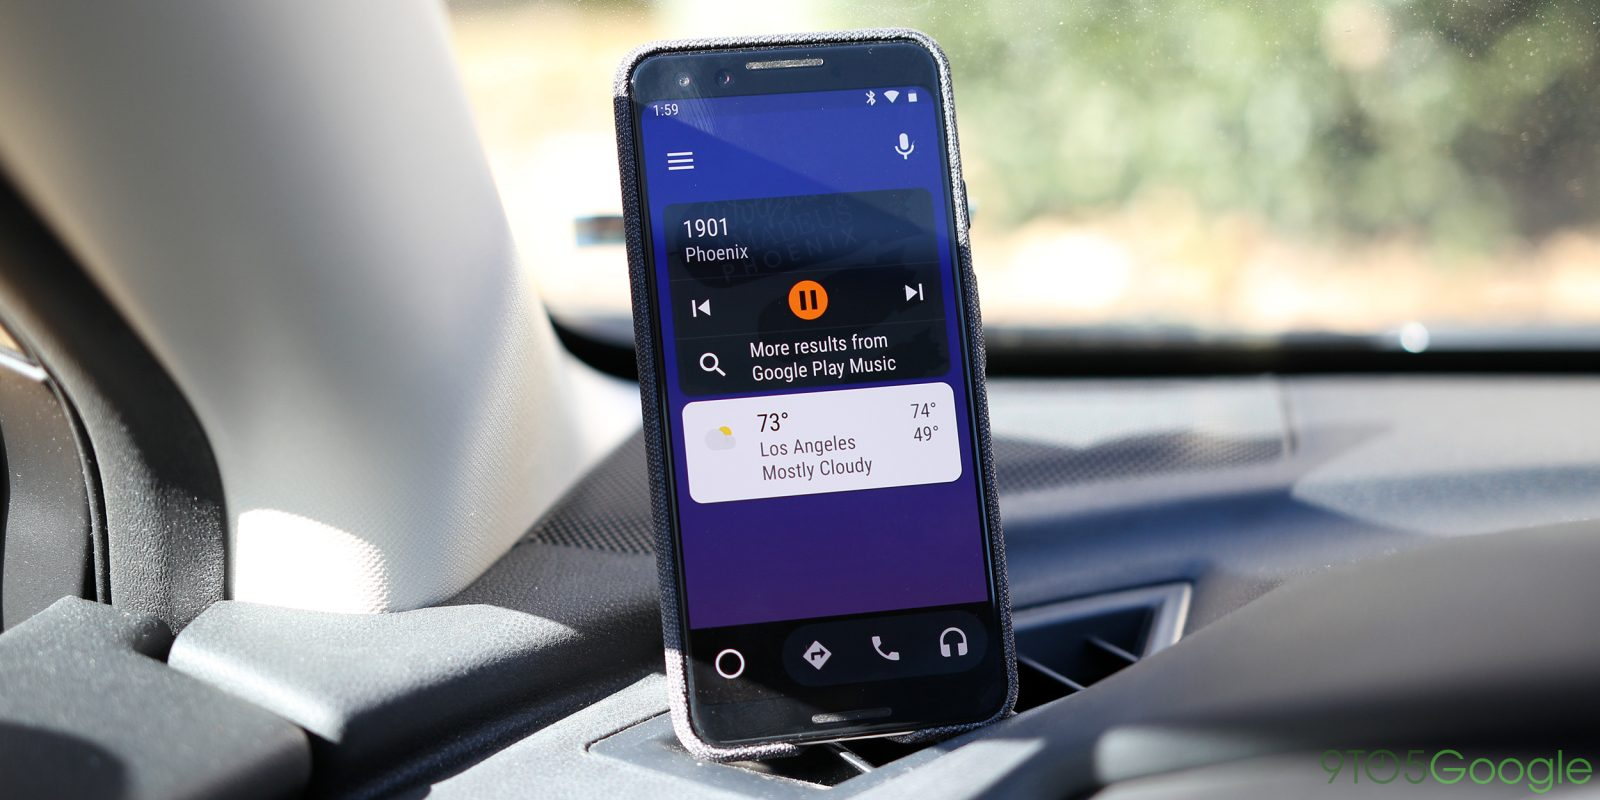 Android Auto | Latest news, cars, and more - 9to5Google